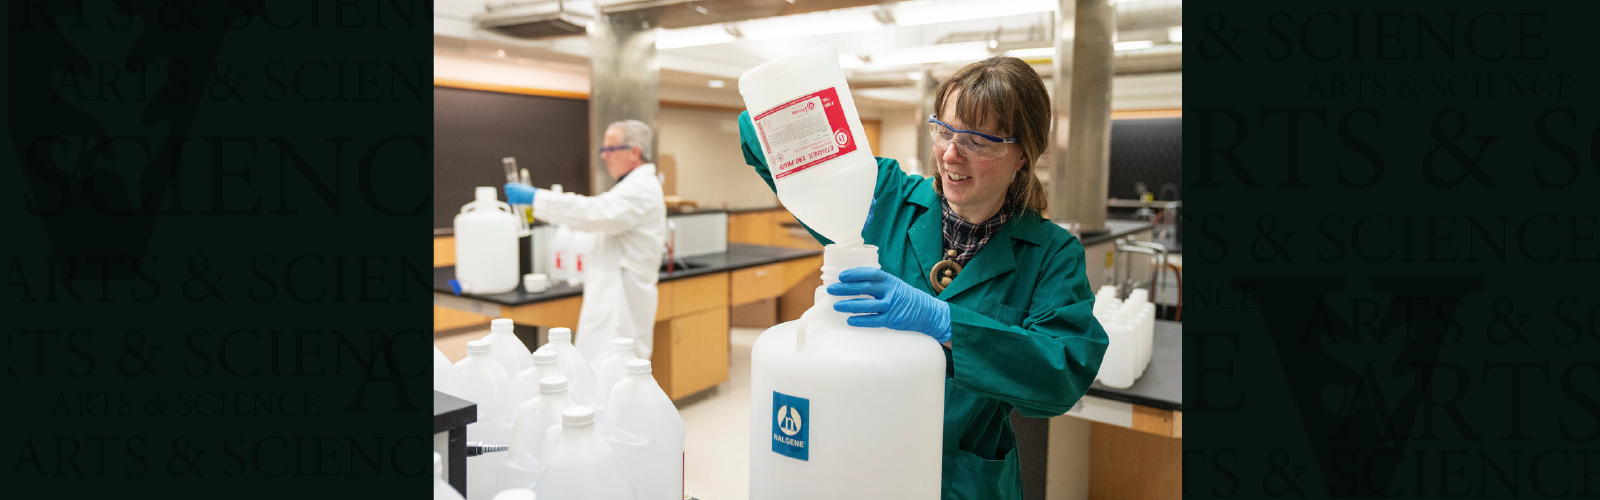 Chemistry department leverages available resources for hand sanitizer production